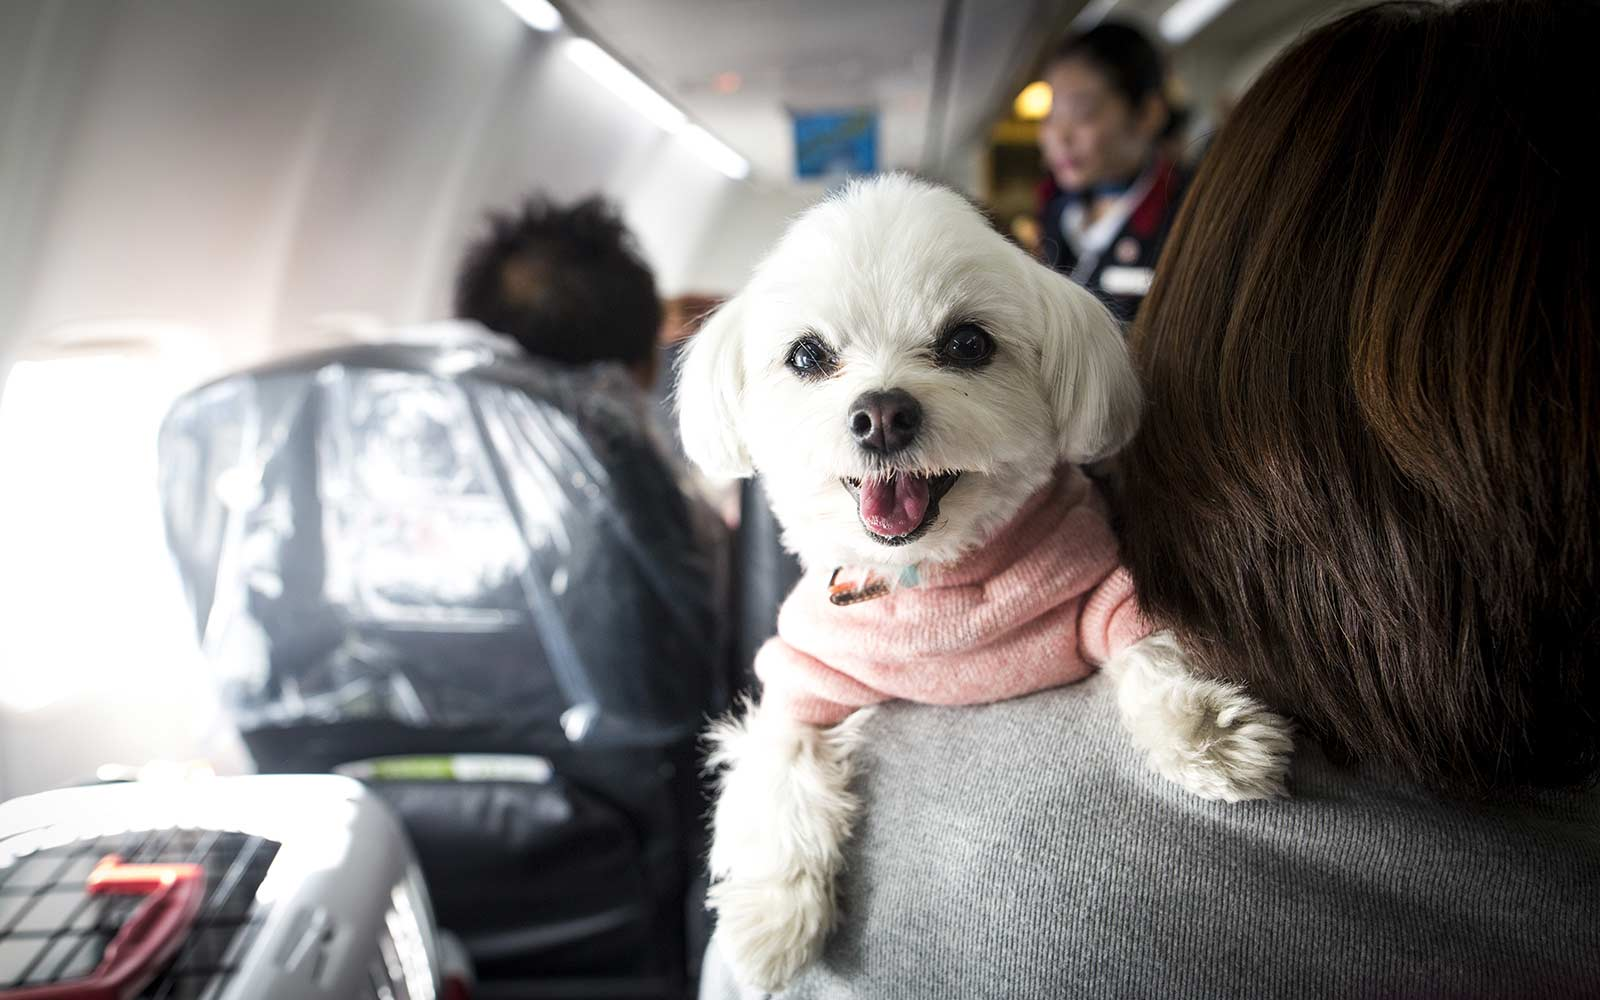 This Dog-friendly Airline Is an Animal Lover's Dream Come True